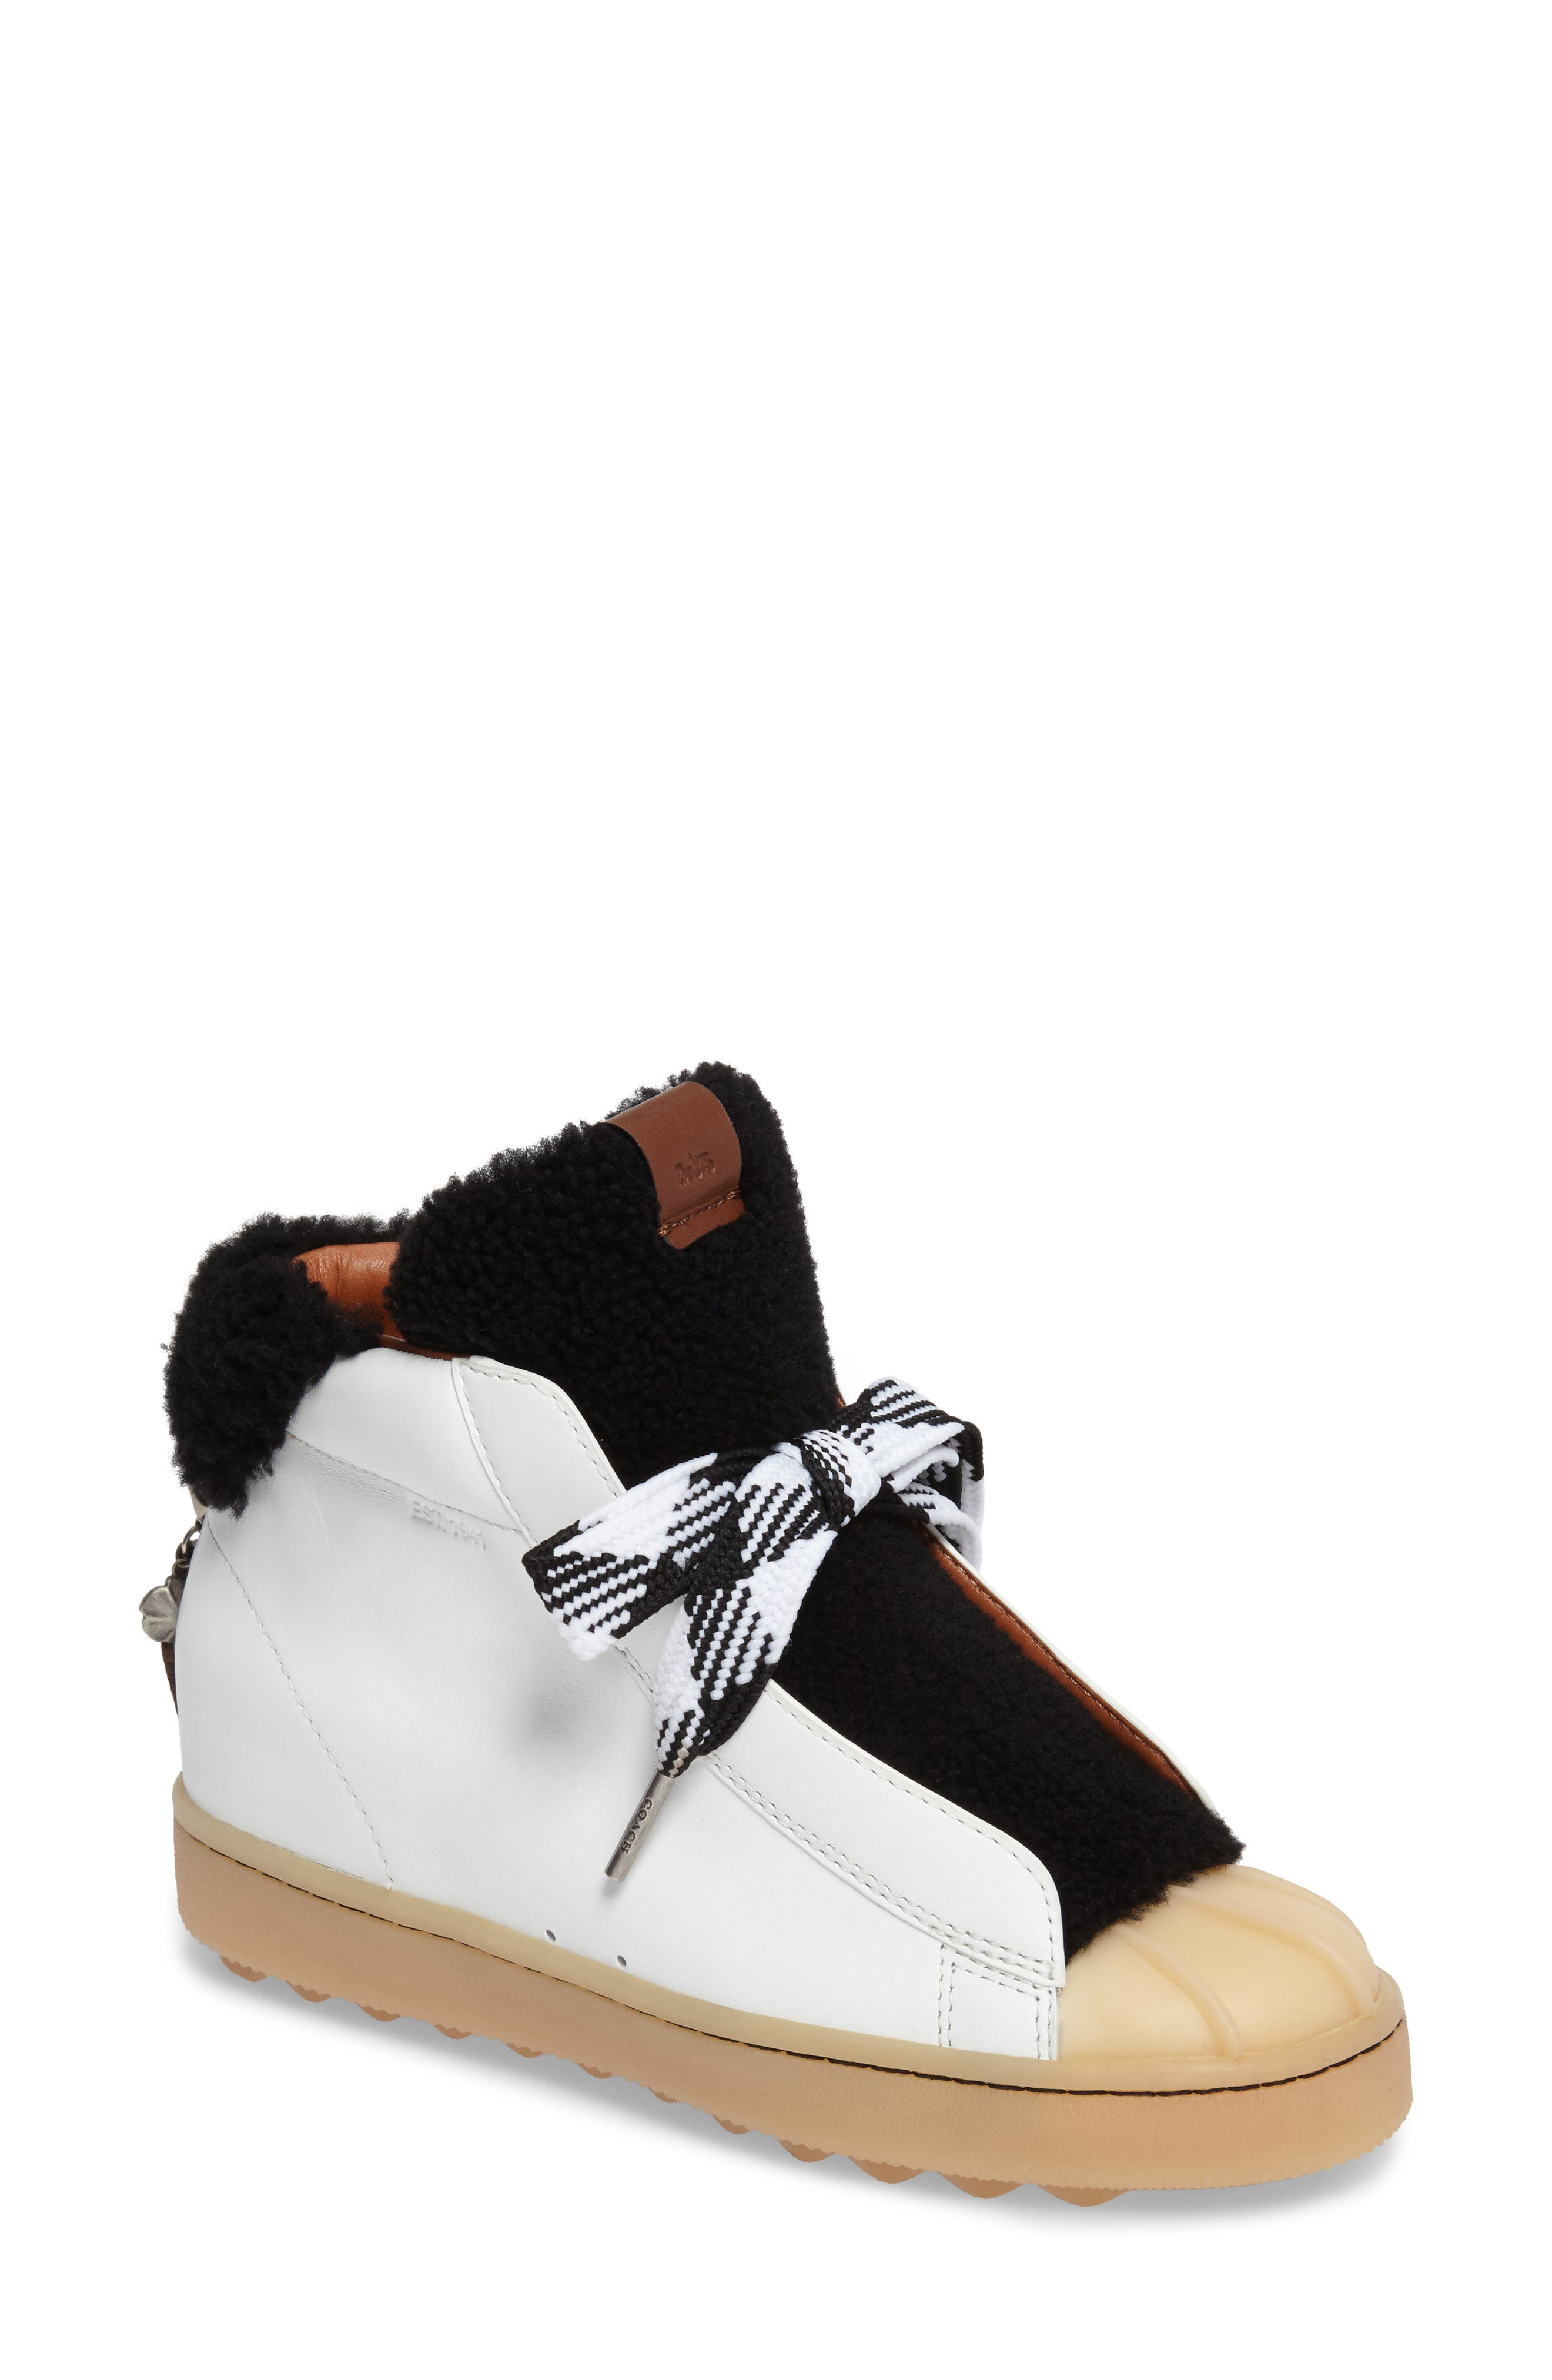 Genuine Shearling High Top Sneaker,                         Main,                         color, Black/ White Suede